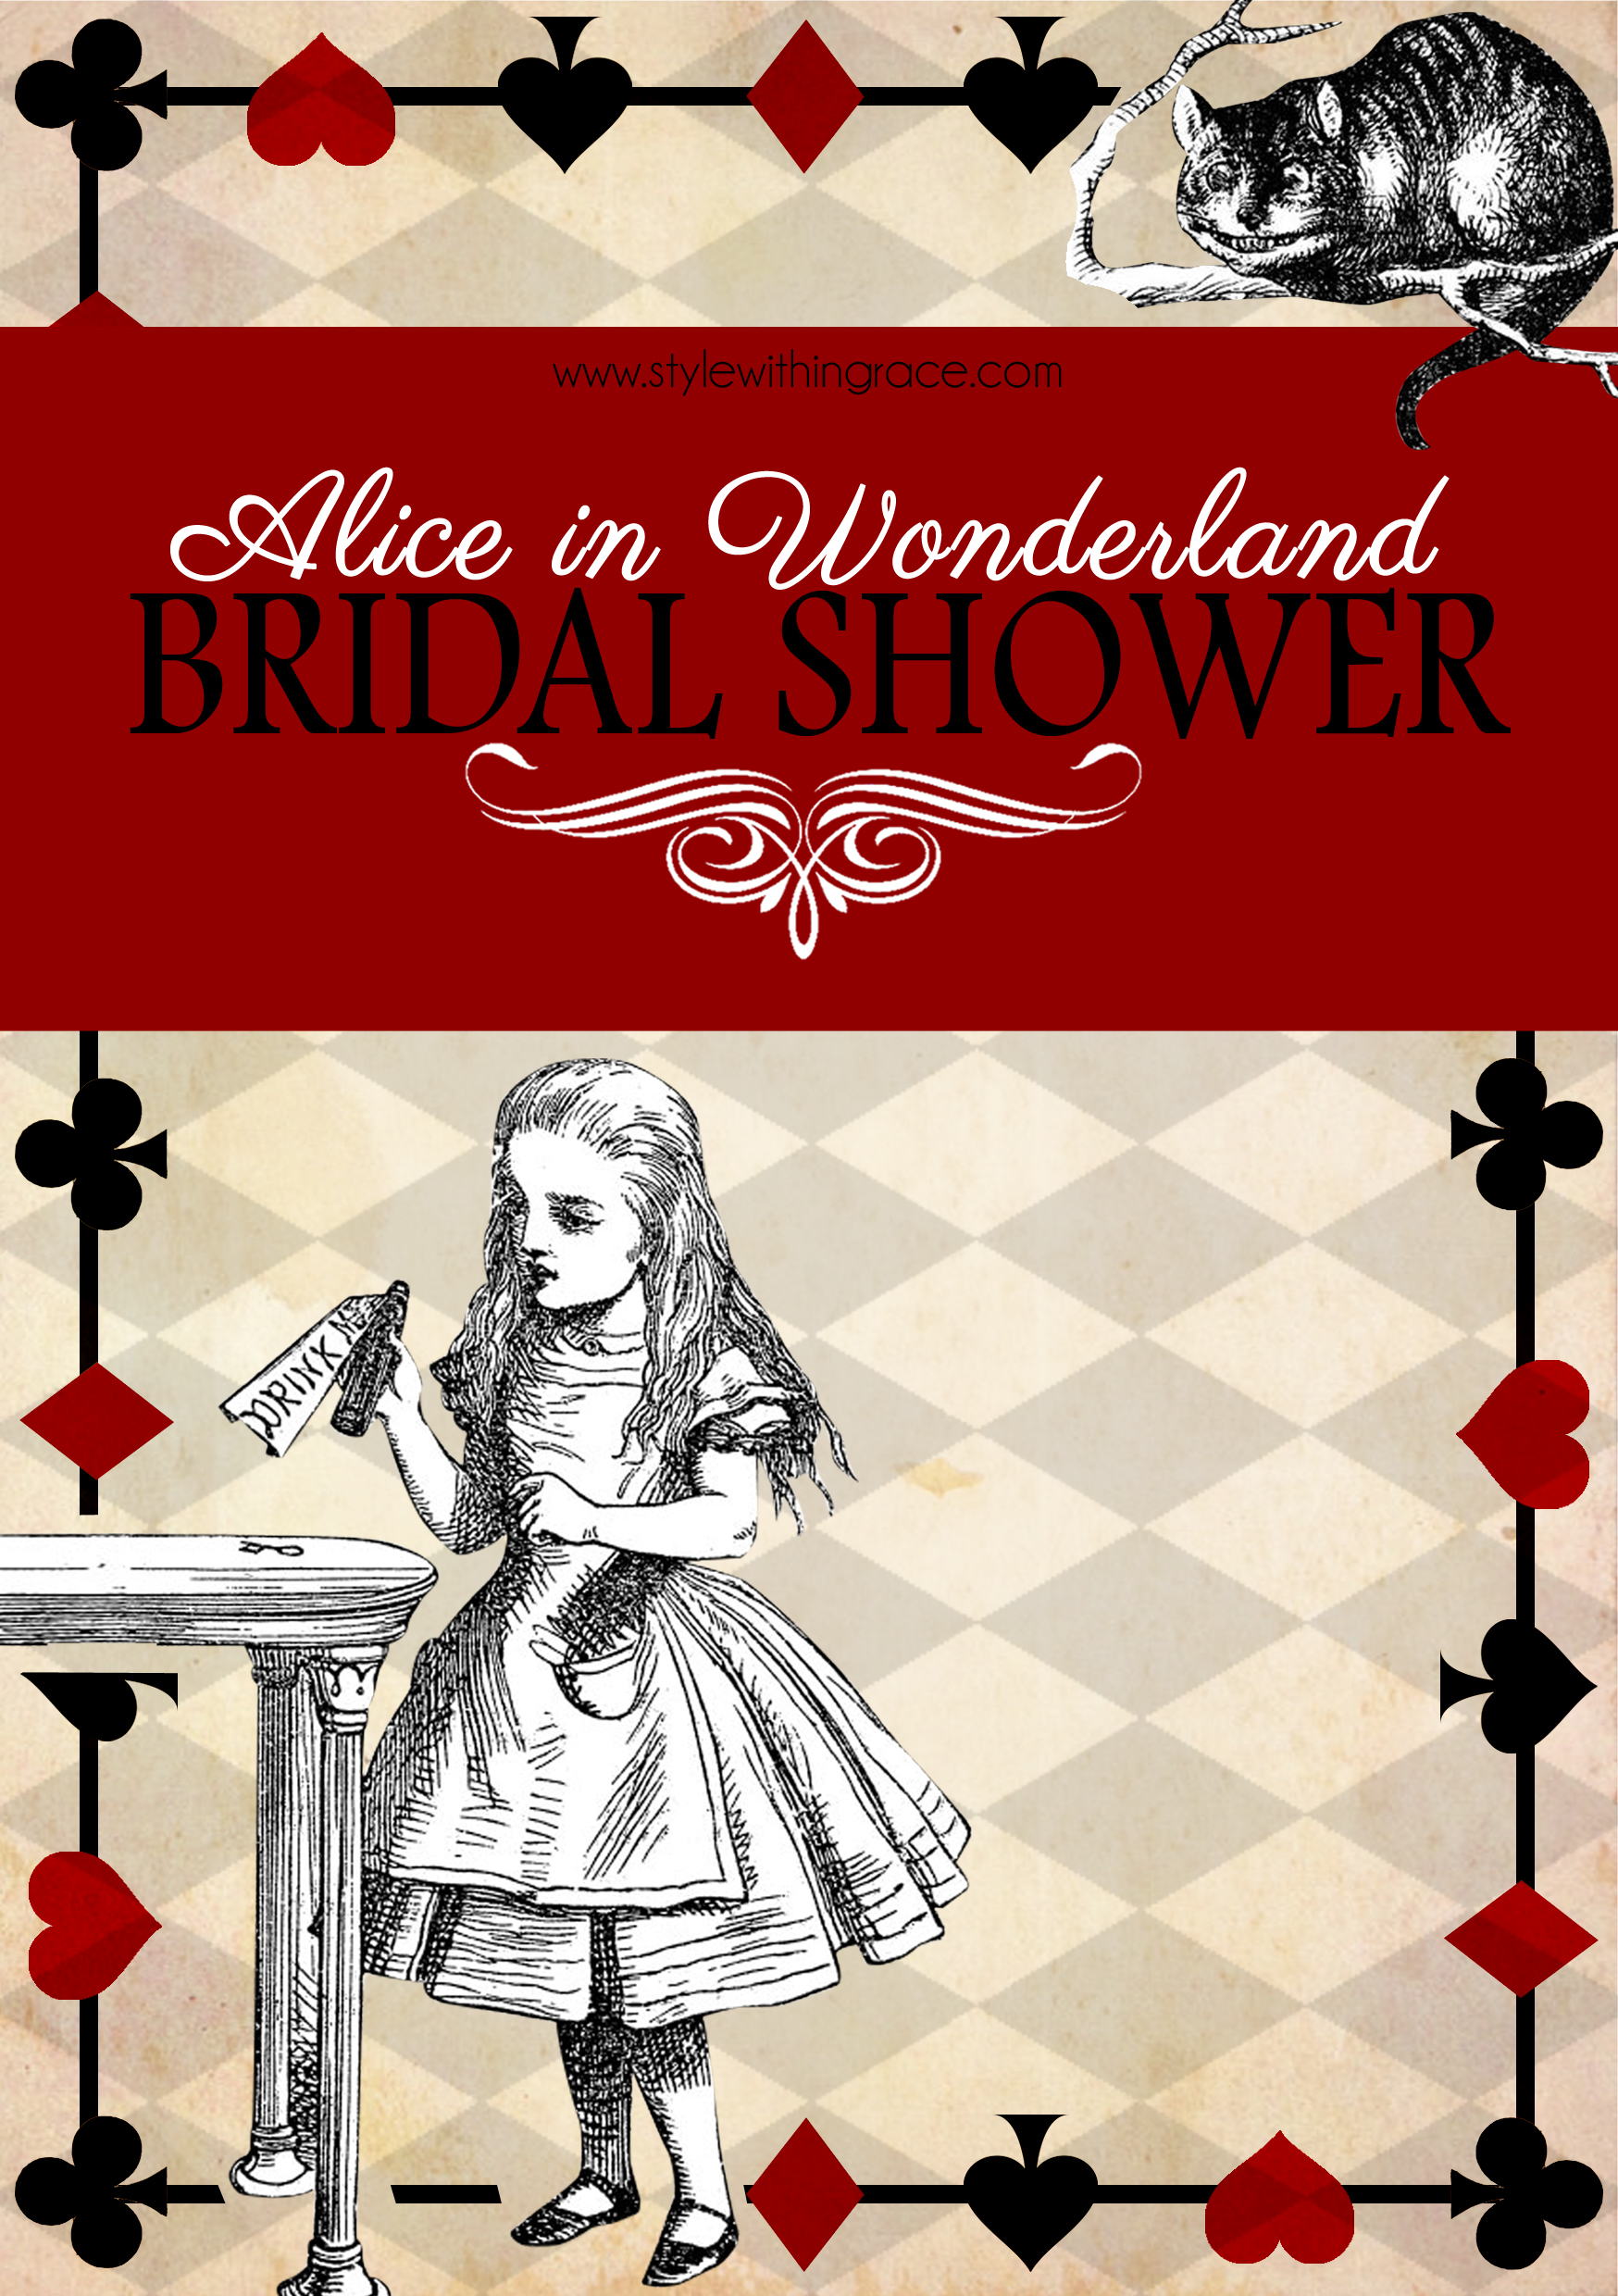 Alice In Wonderland Bridal Shower - Ideas and inspiration for planning your Wonderland themed bridal shower with free printables for invitations and games.